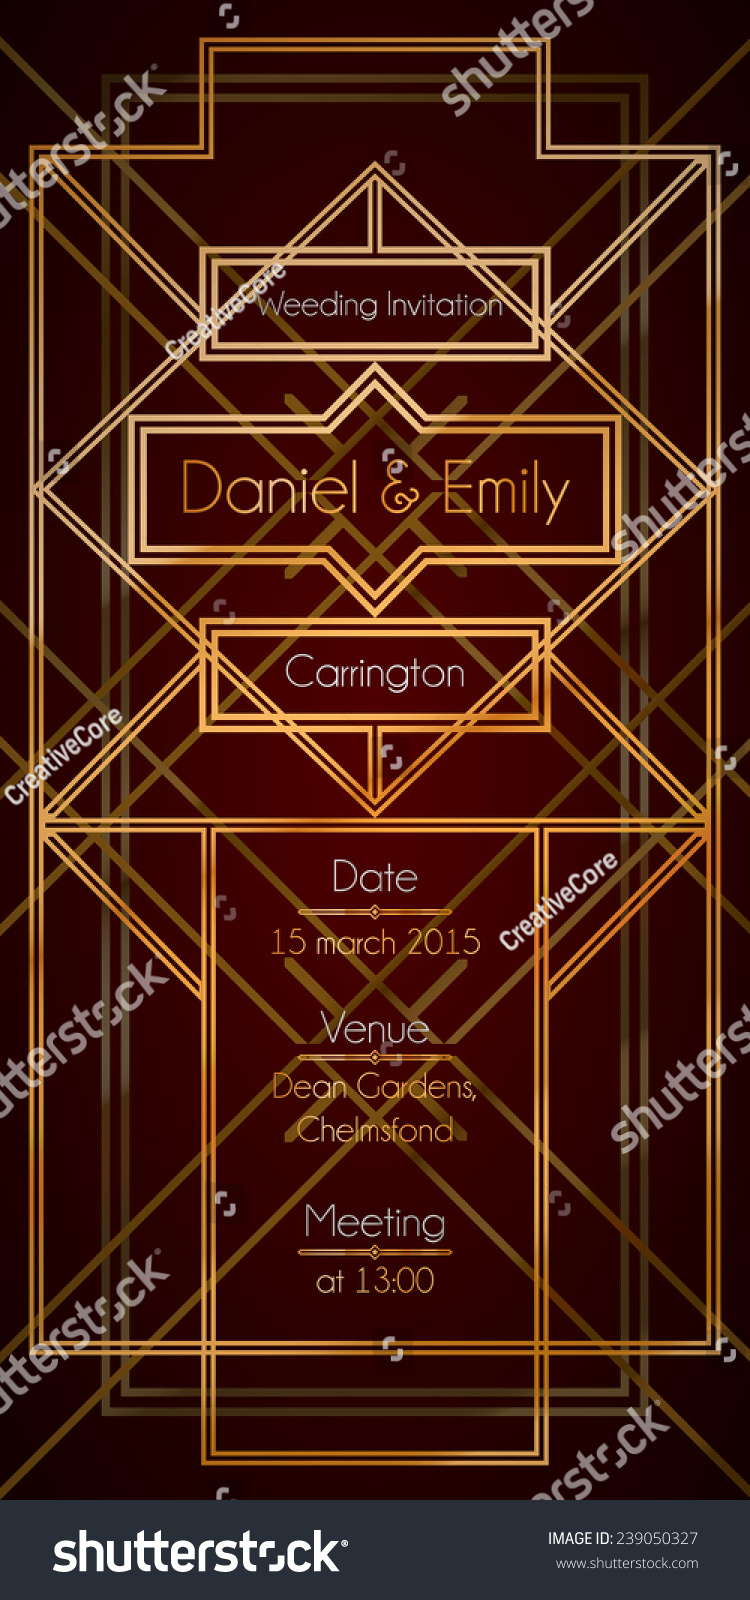 Art Deco Wedding Invitation Stock Vector (Royalty Free) 239050327 ...